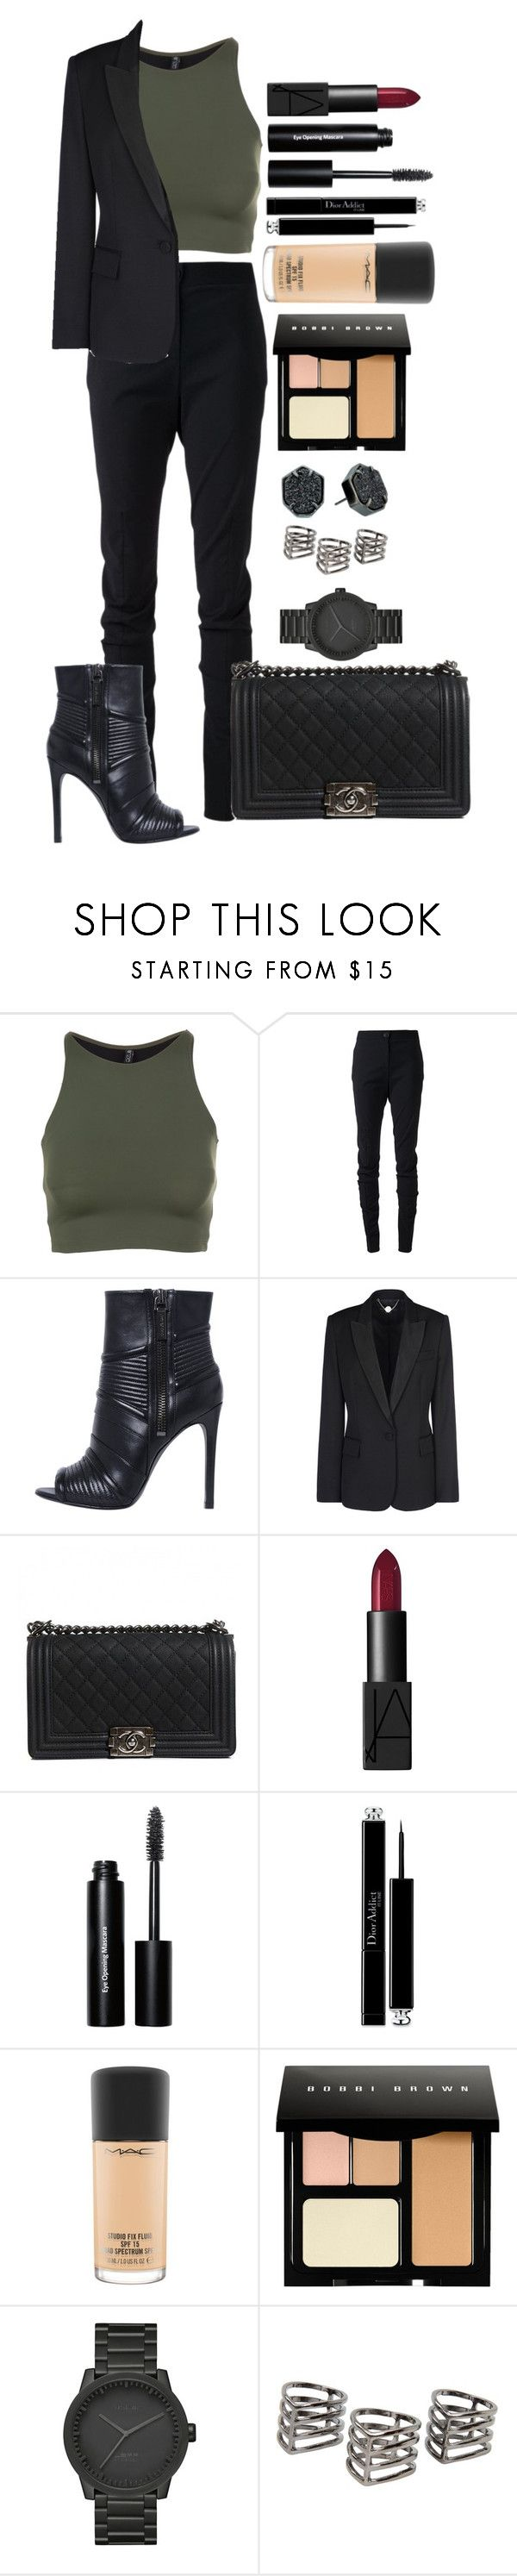 """Untitled #1340"" by fabianarveloc on Polyvore featuring Onzie, Vivienne Westwood Anglomania, Pierre Balmain, STELLA McCARTNEY, Chanel, NARS Cosmetics, Bobbi Brown Cosmetics, Christian Dior, MAC Cosmetics and LEFF Amsterdam"